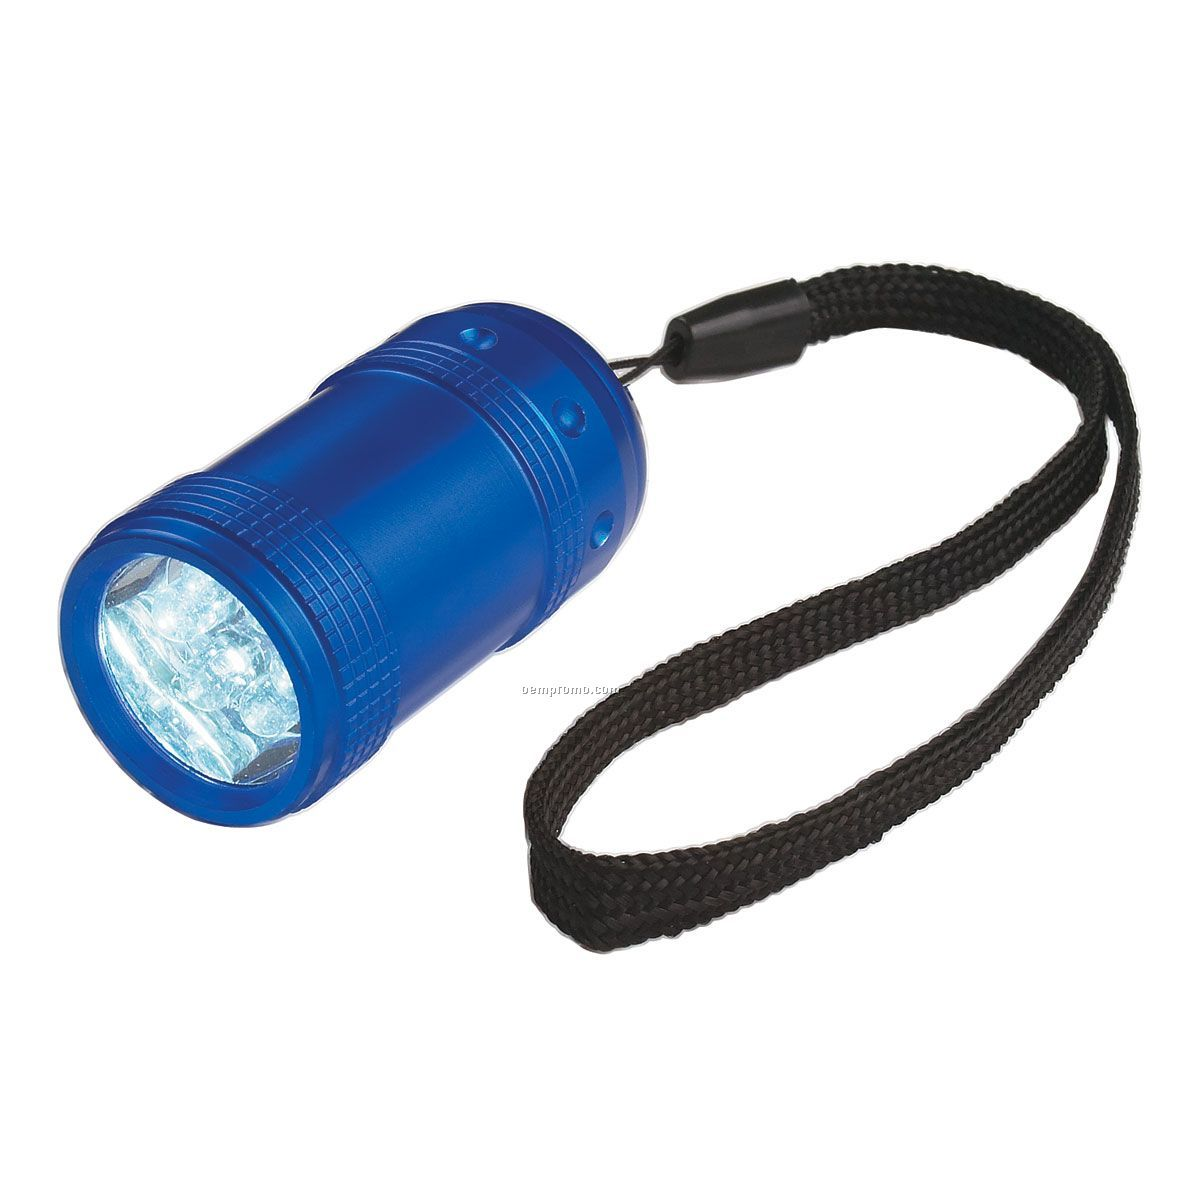 Square Light Up Flashlight W/ 6 Leds - Blue